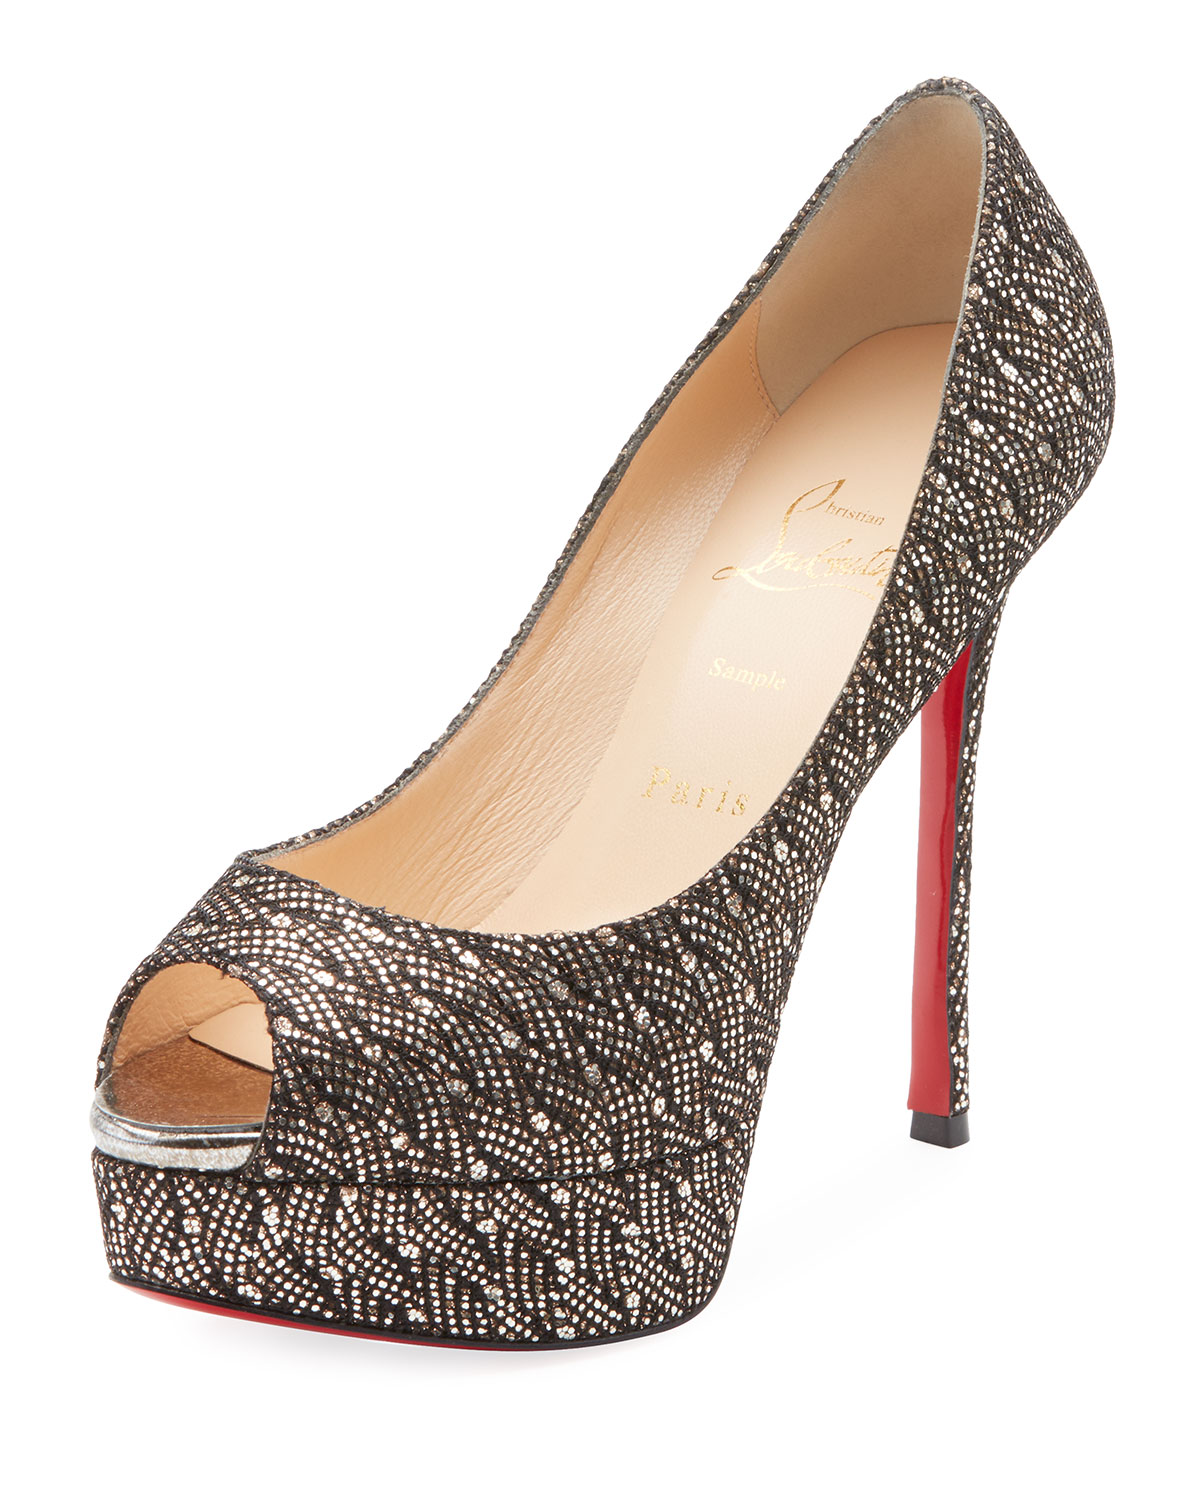 CHRISTIAN LOUBOUTIN FETISH PEEP 130MM PLATFORM GLITTERED RED SOLE PUMP